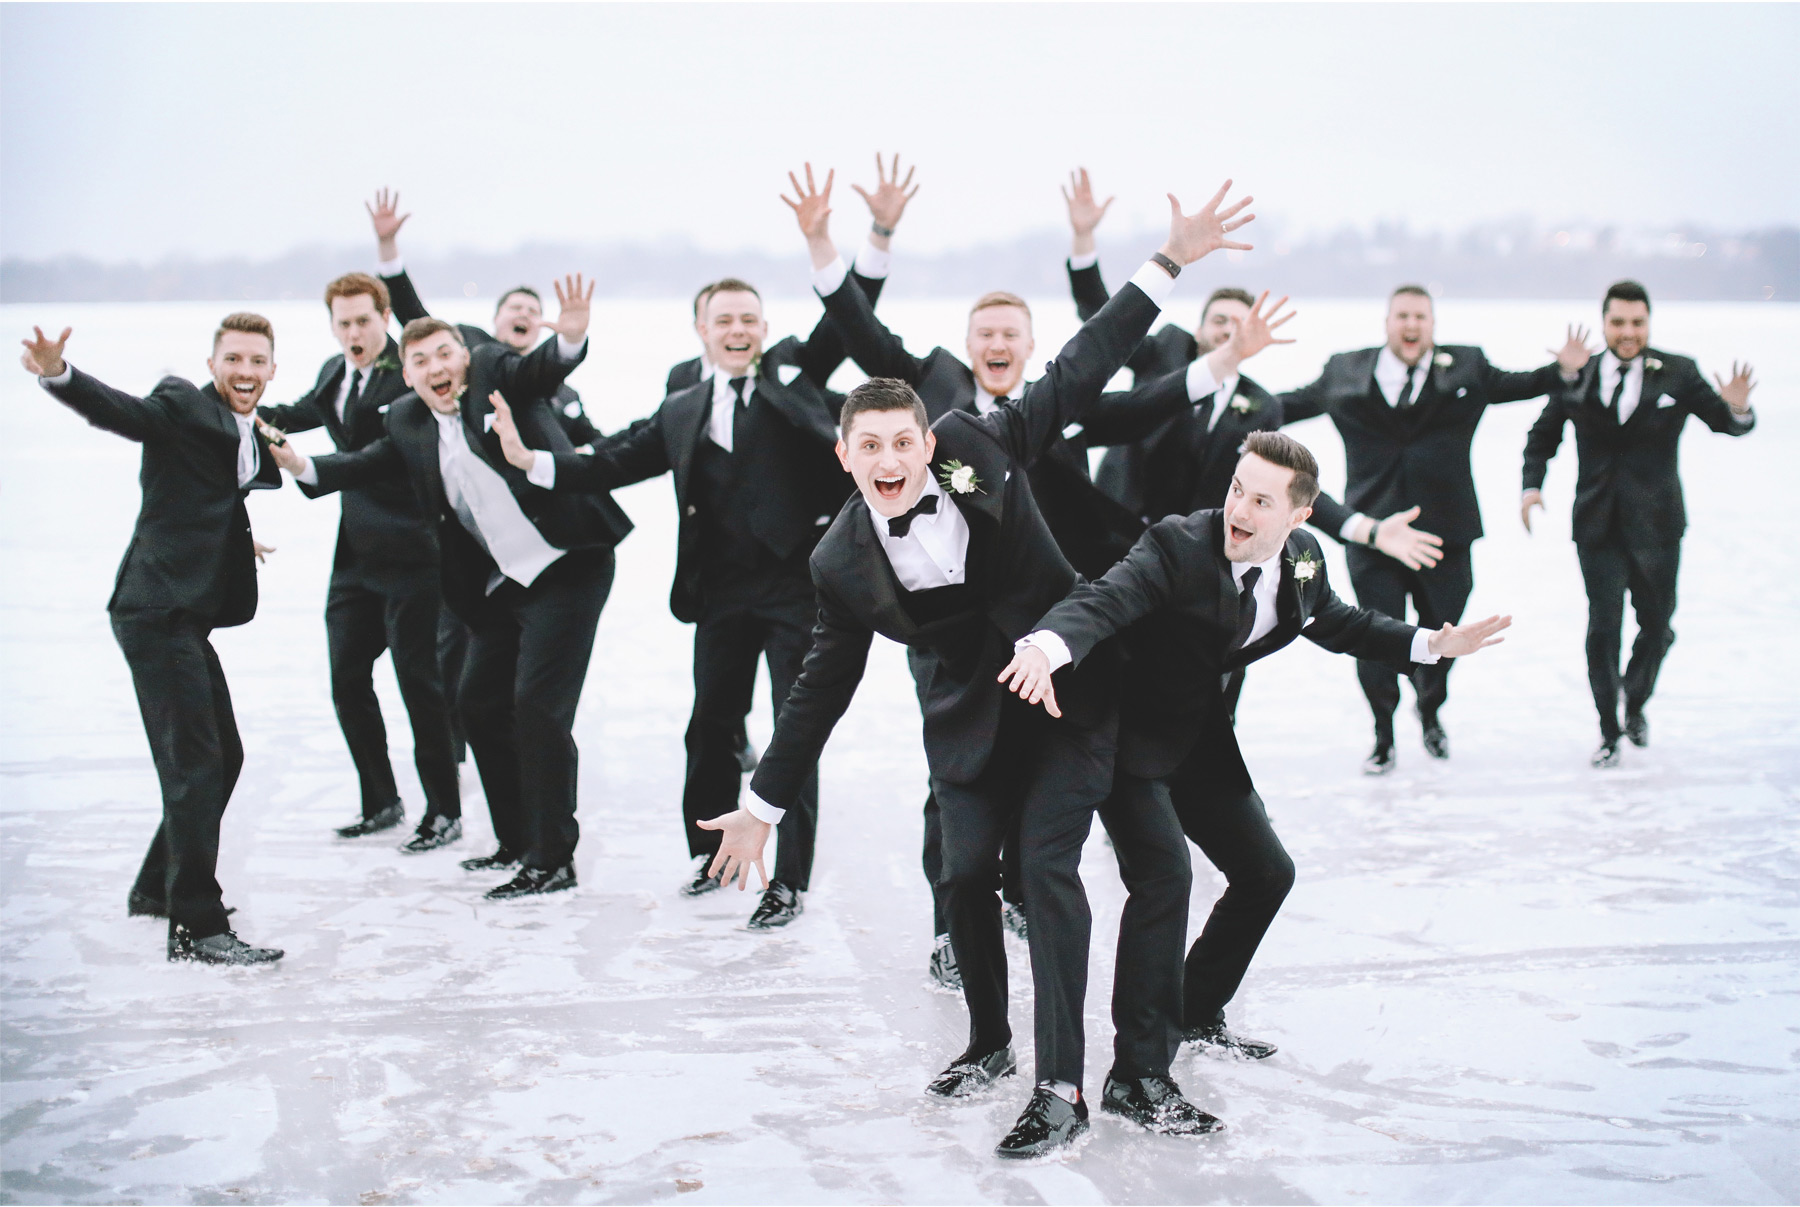 17-Minneapolis-Minnesota-Wedding-Photographer-by-Vick-Photography-Winter-Wedding-Frozen-Lake-Groomsmen-Snow-Maggie-and-Matt.jpg